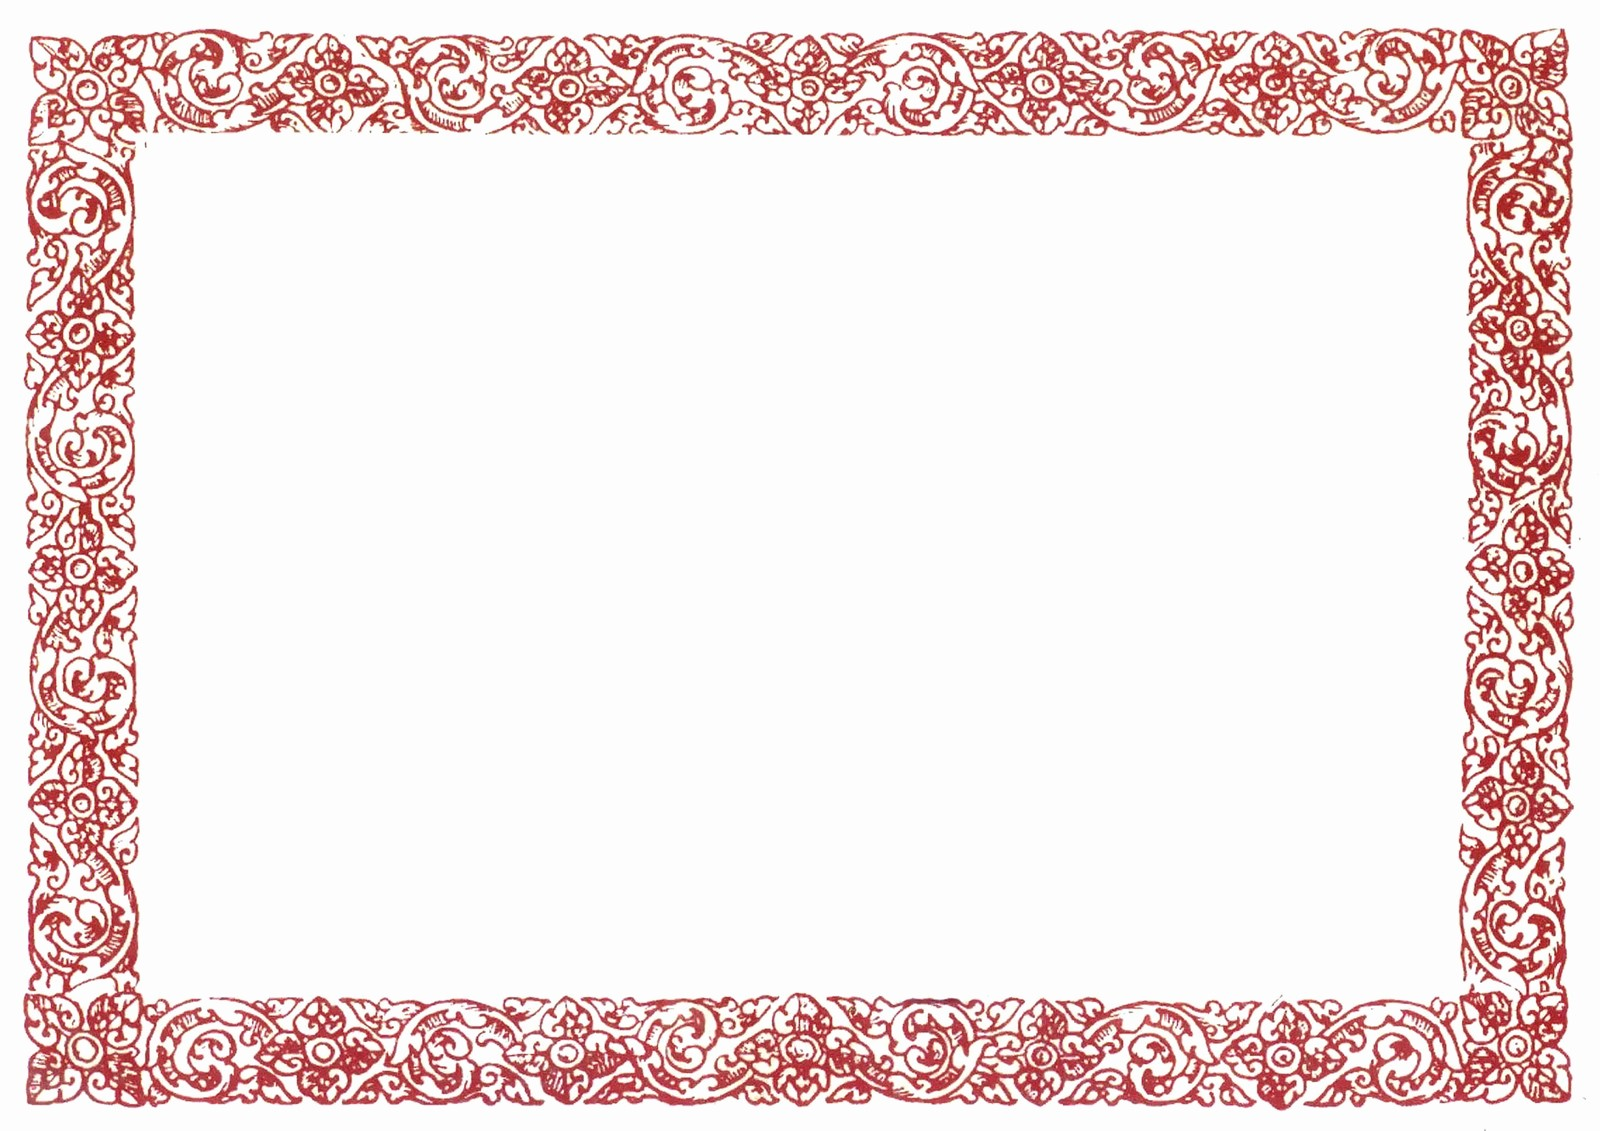 Certificate Border Design Free Download Lovely Red Border Certificate Templates